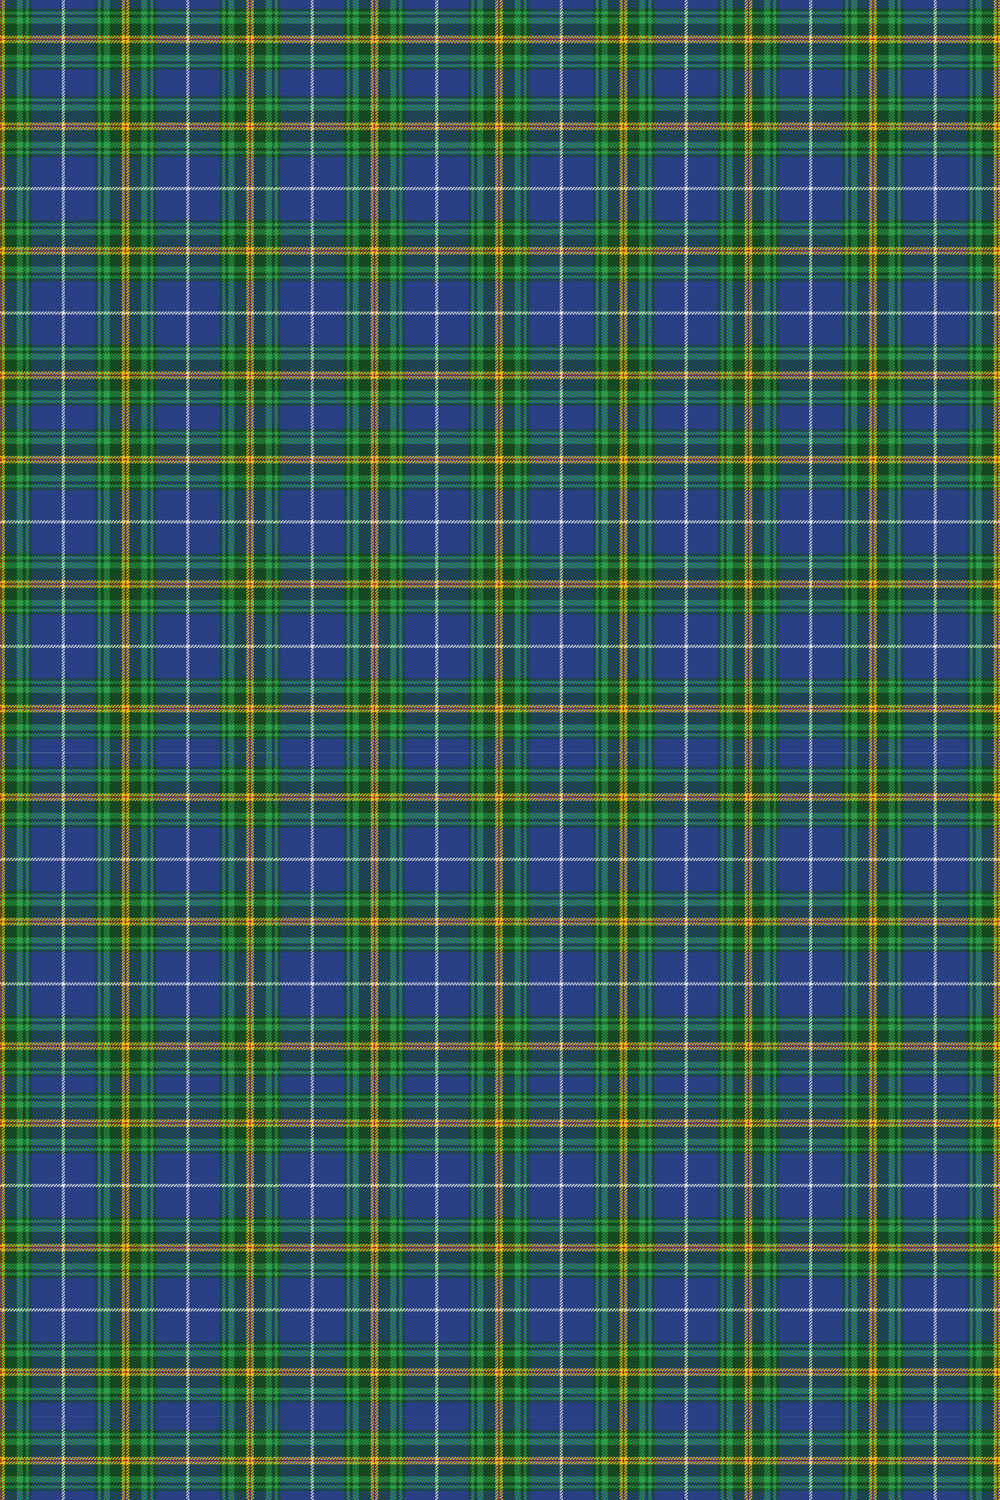 NS Tartan - iphone 4S, 4.jpg